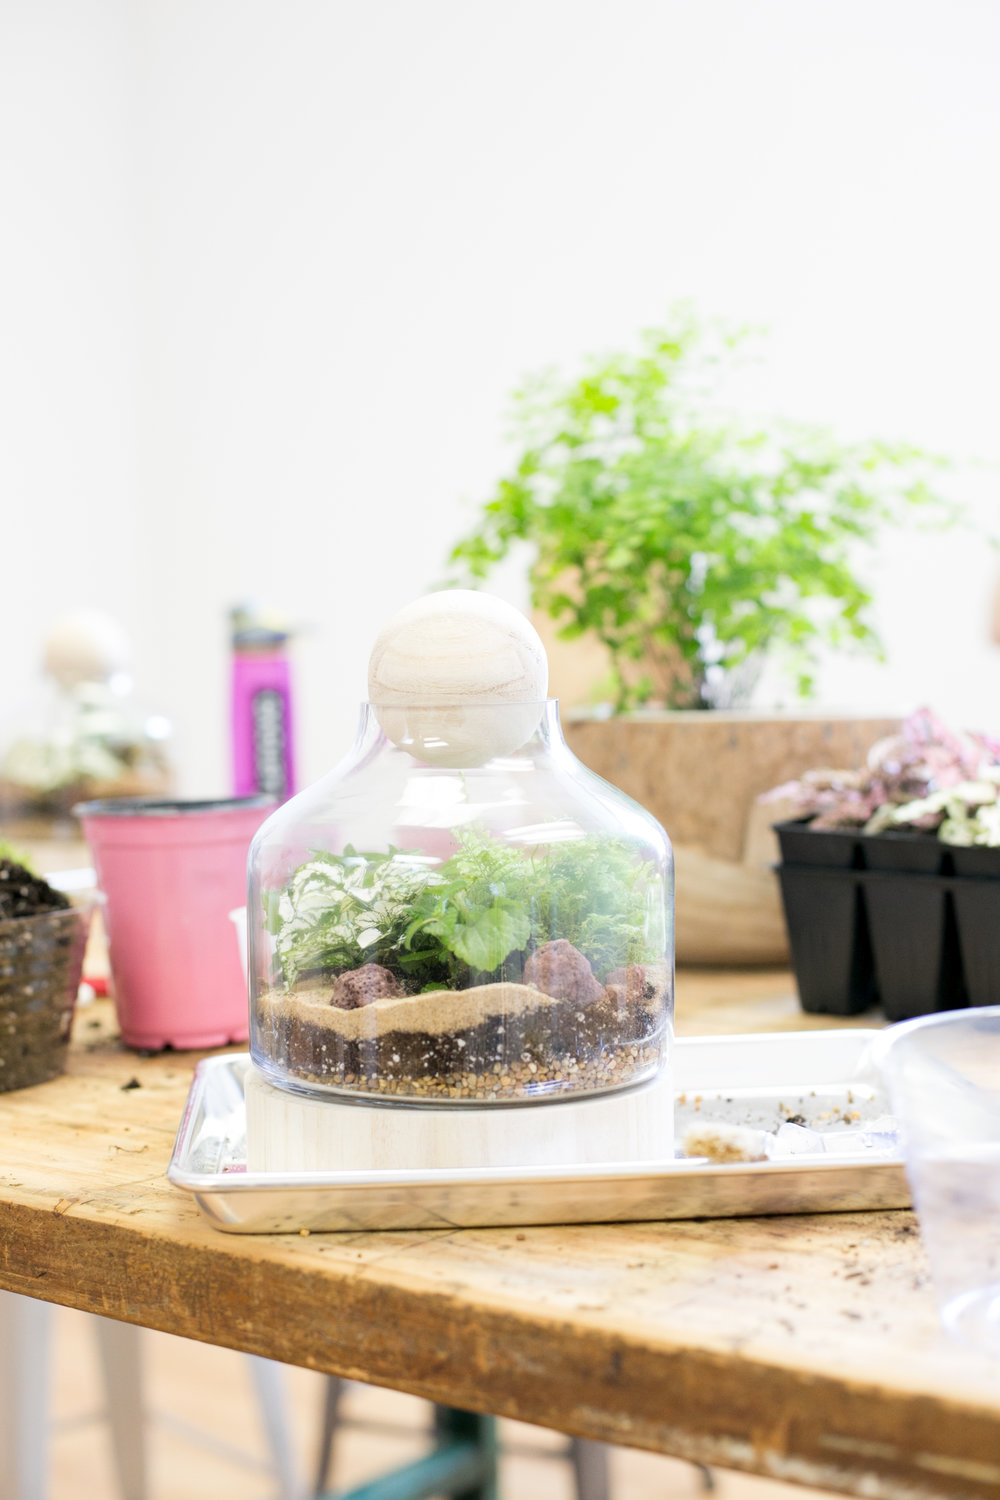 Terrariums with a closed top are ideal for creating a humid environment for plants like ferns.